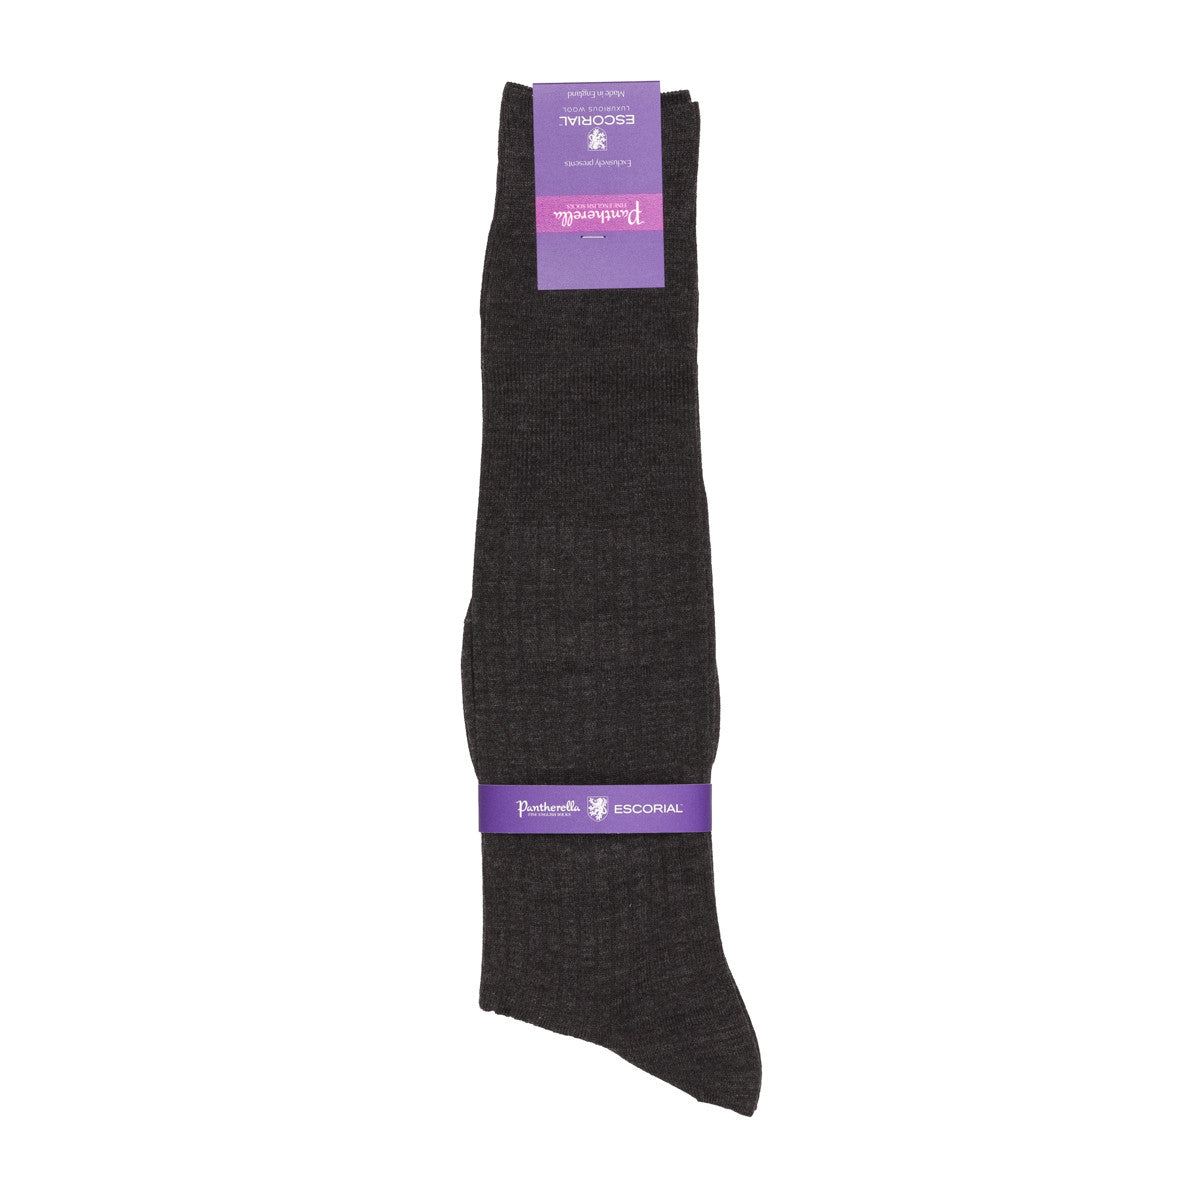 Pantherella knee high socks Escorial wool dark grey mix